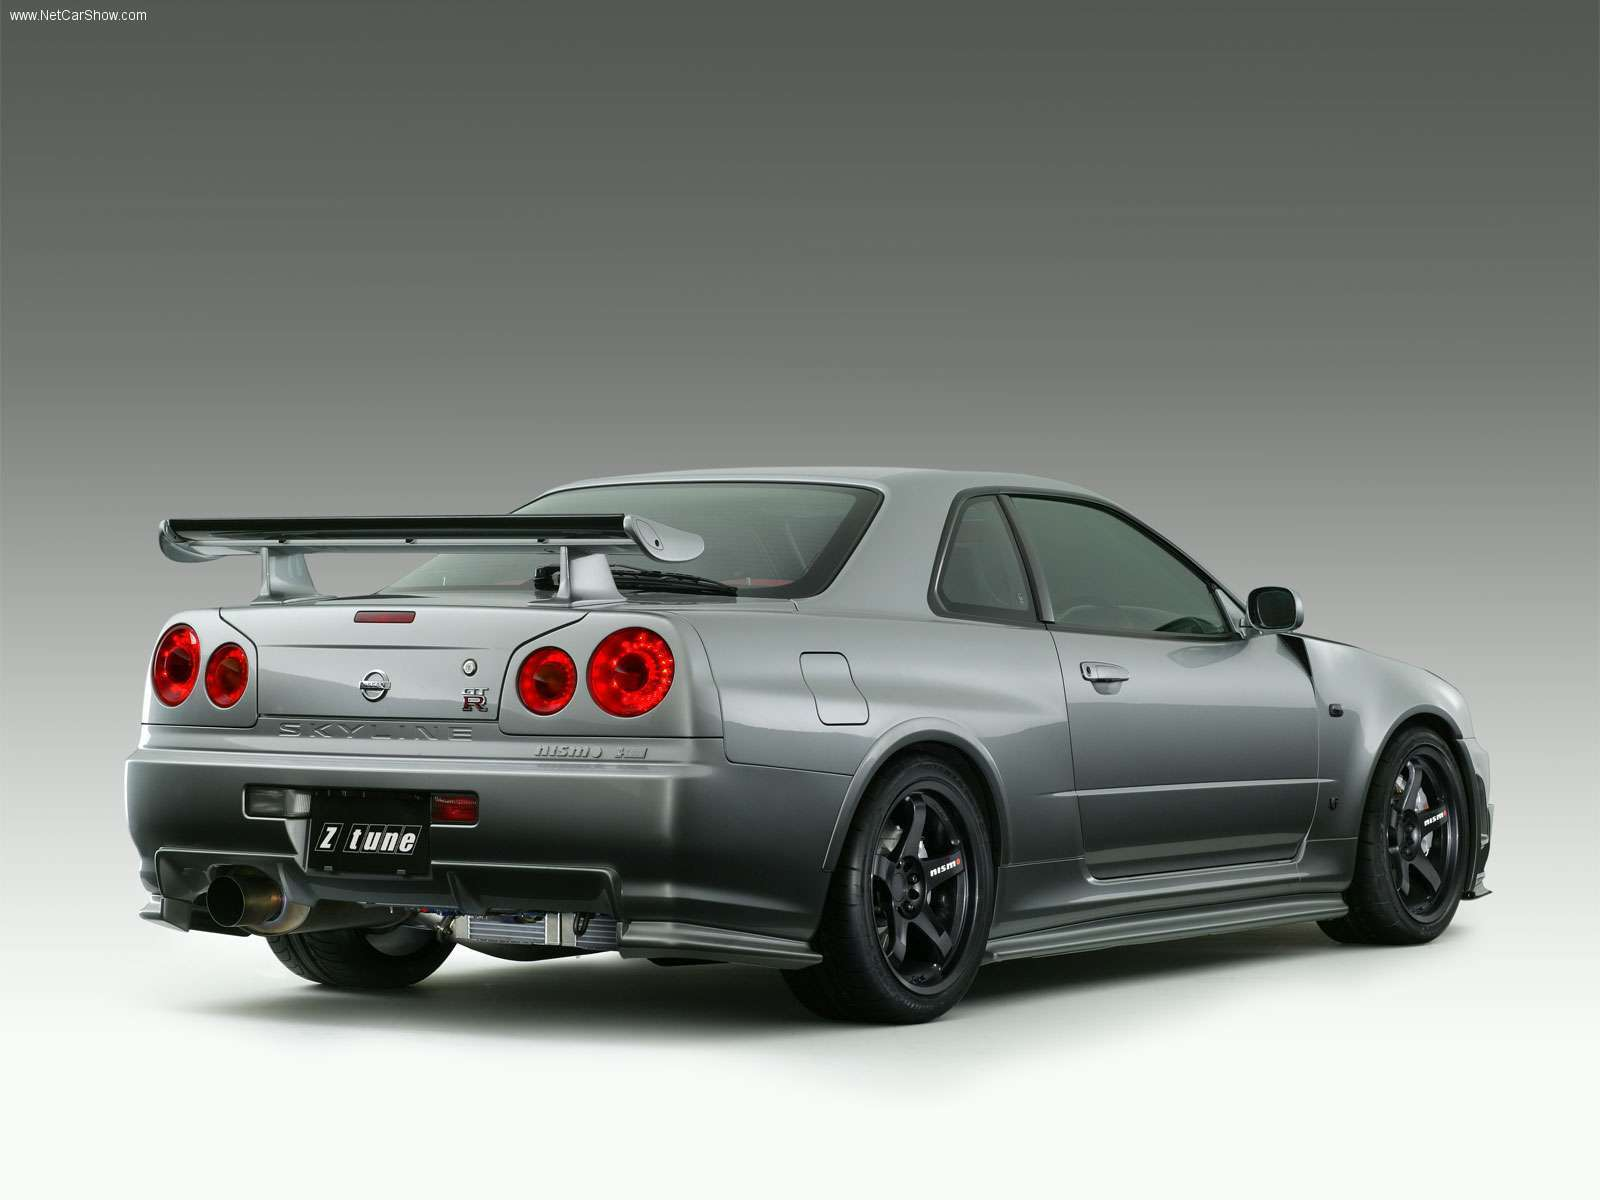 Vehicles - Nissan  - Marijuana - Show - Net - Car - Fast - Awesome - Tune - Skyline Wallpaper